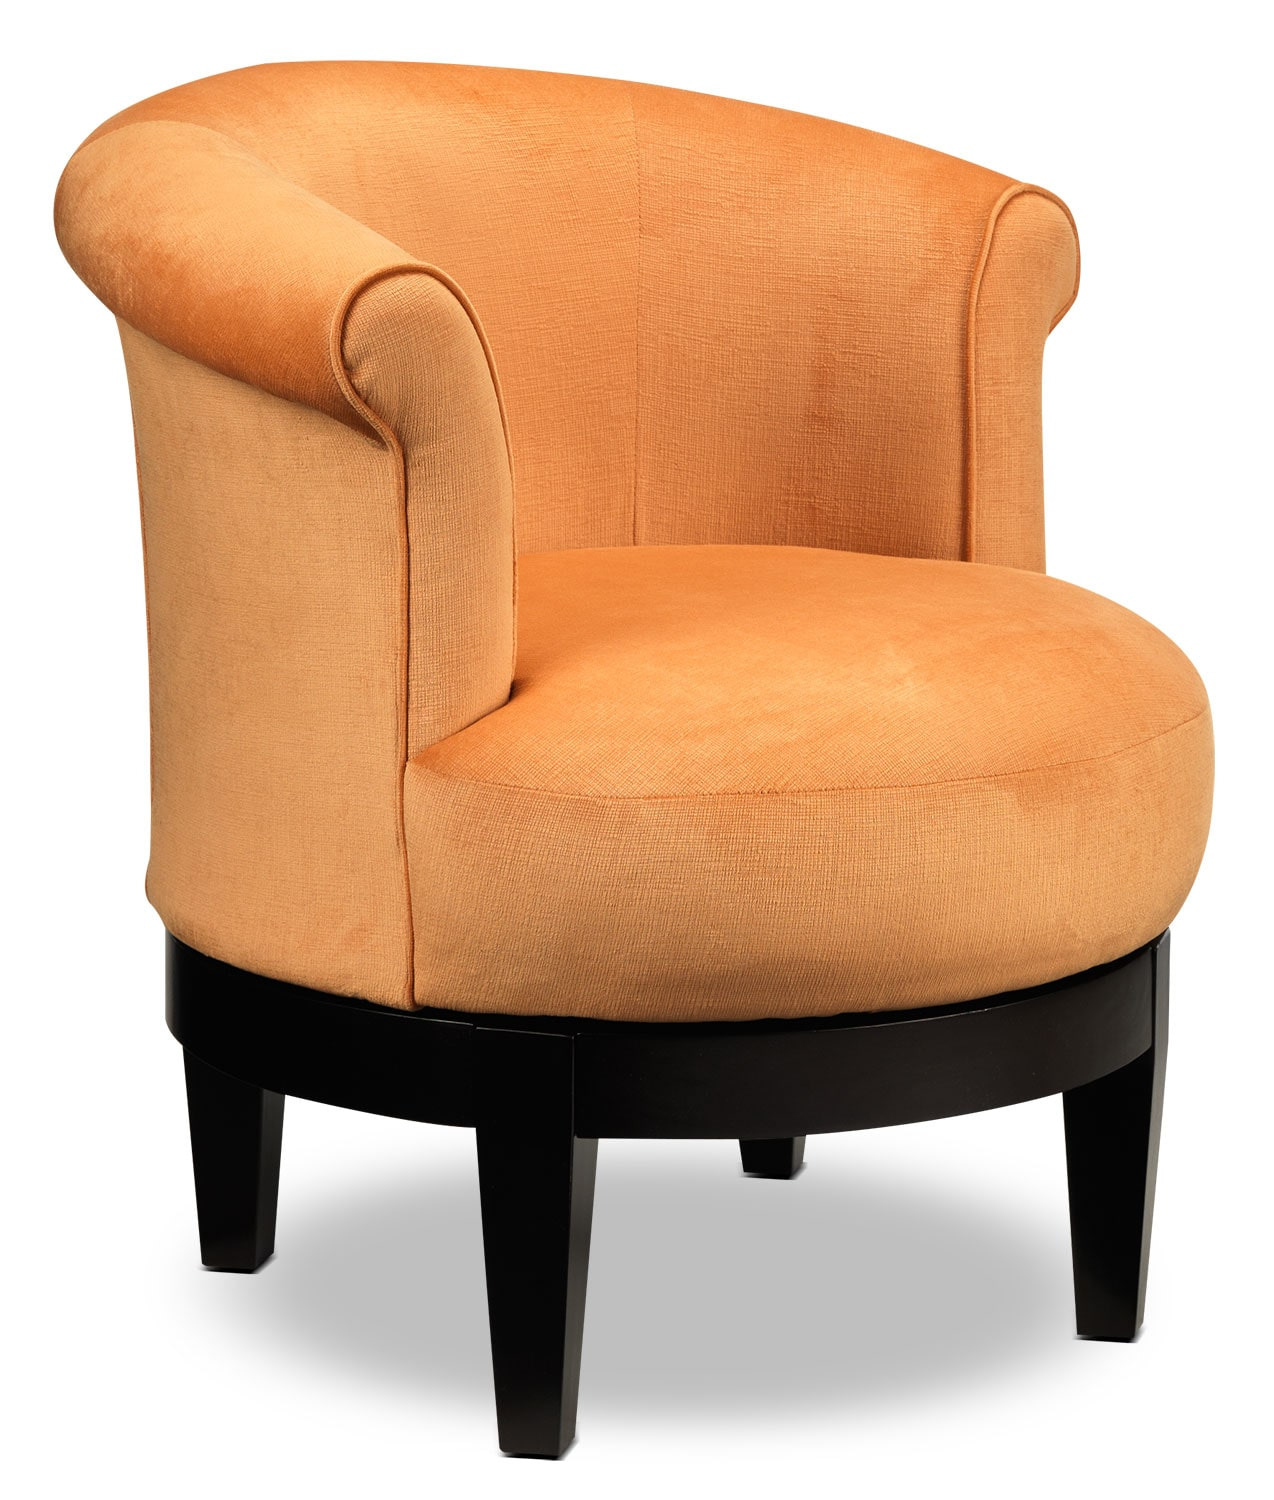 Living Room Furniture - Attica Swivel Accent Chair - Orange